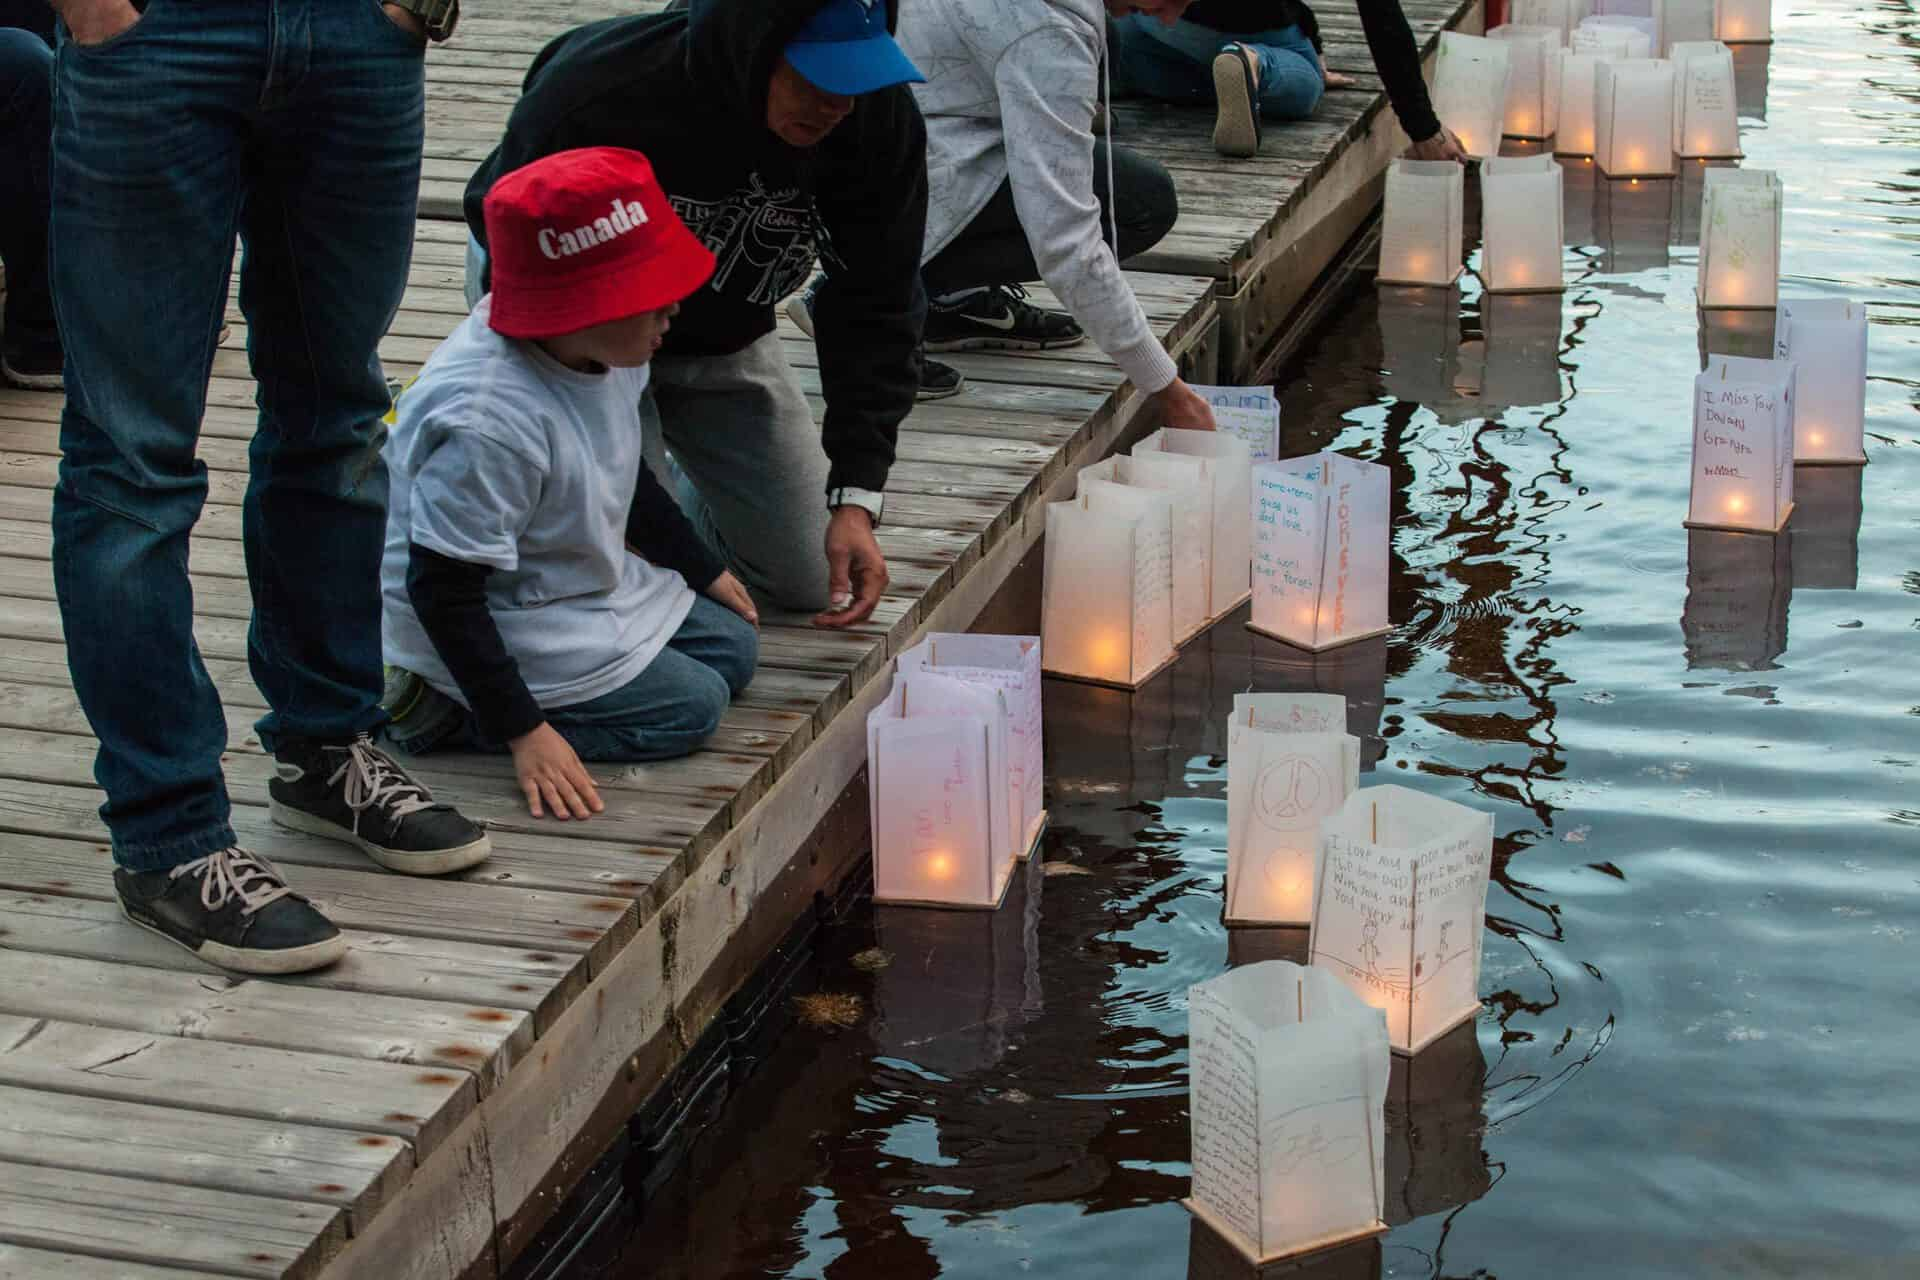 Photo of families launching paper lanterns on water.